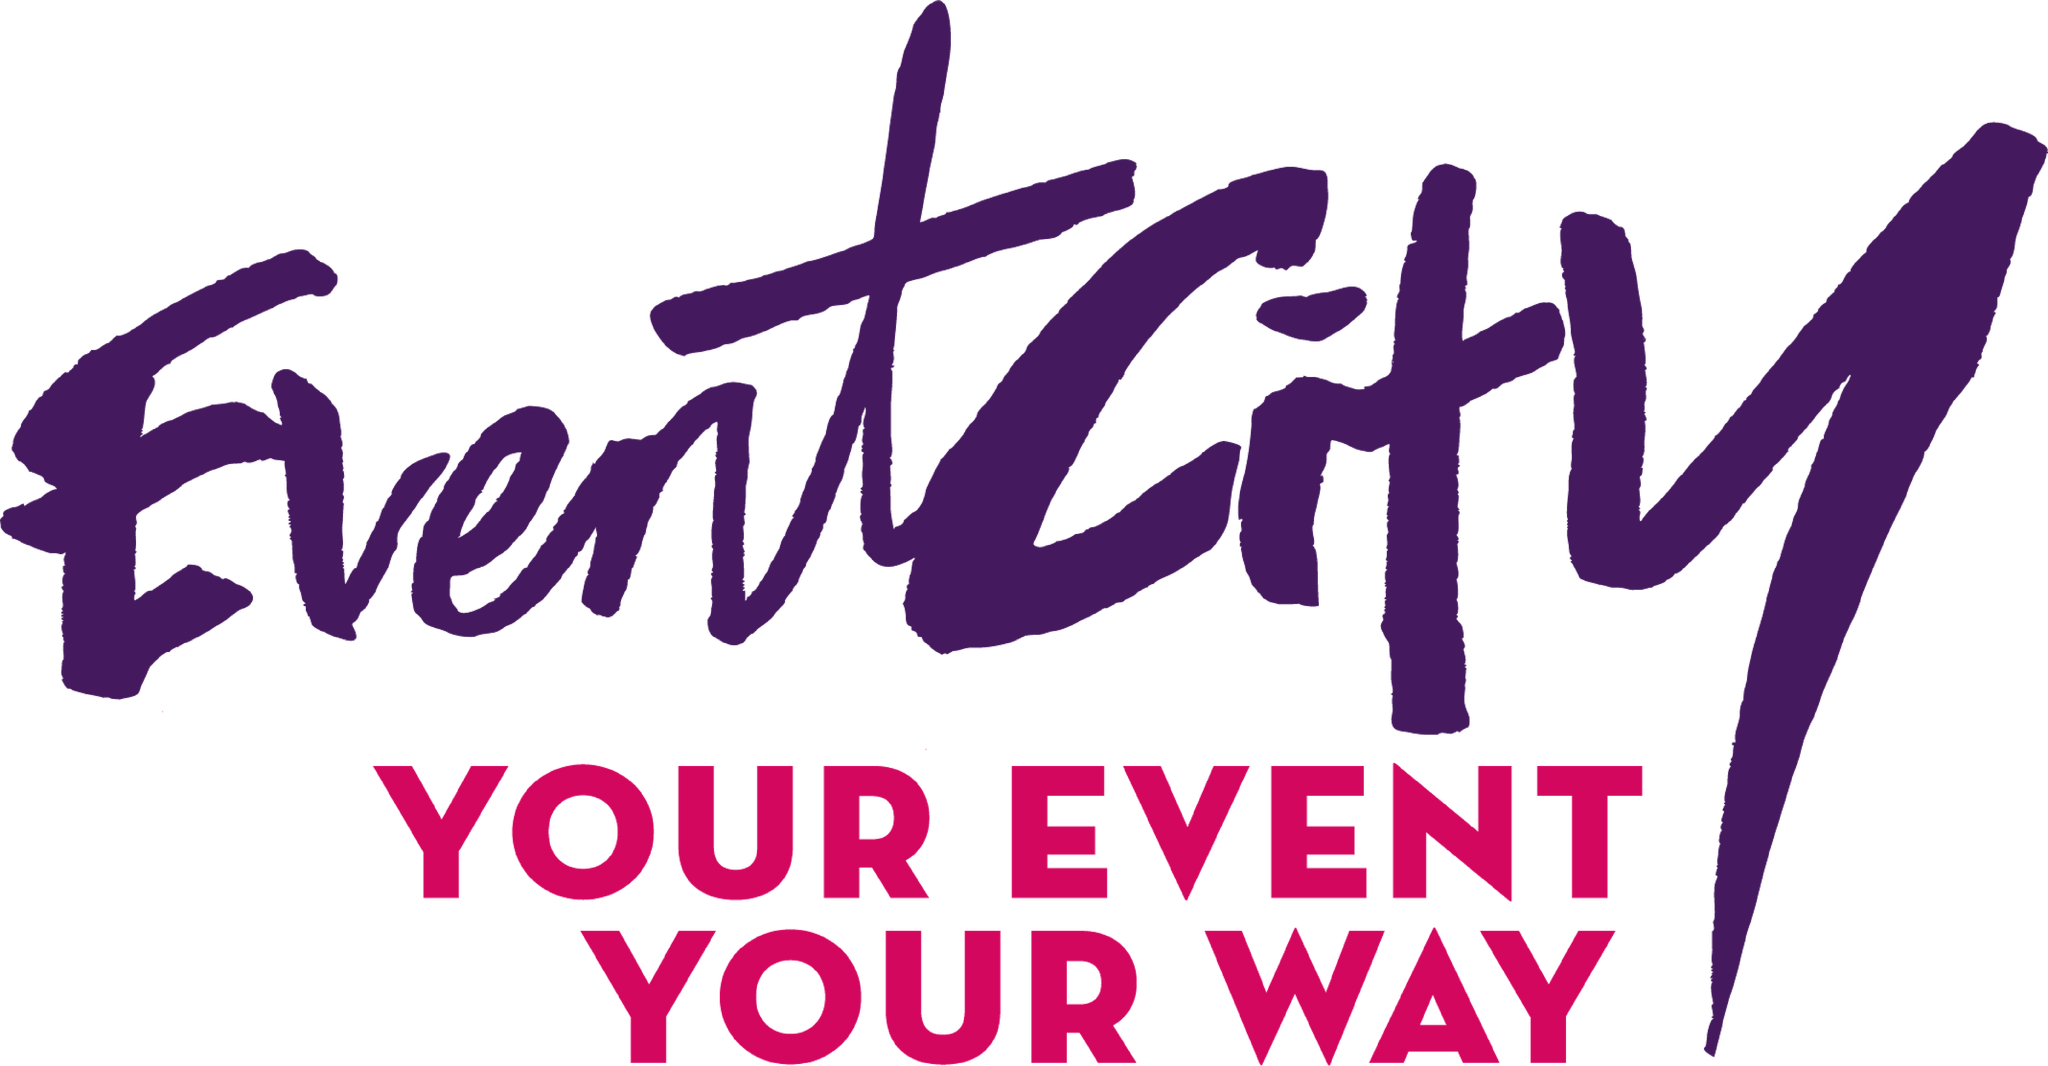 EventCity Ltd